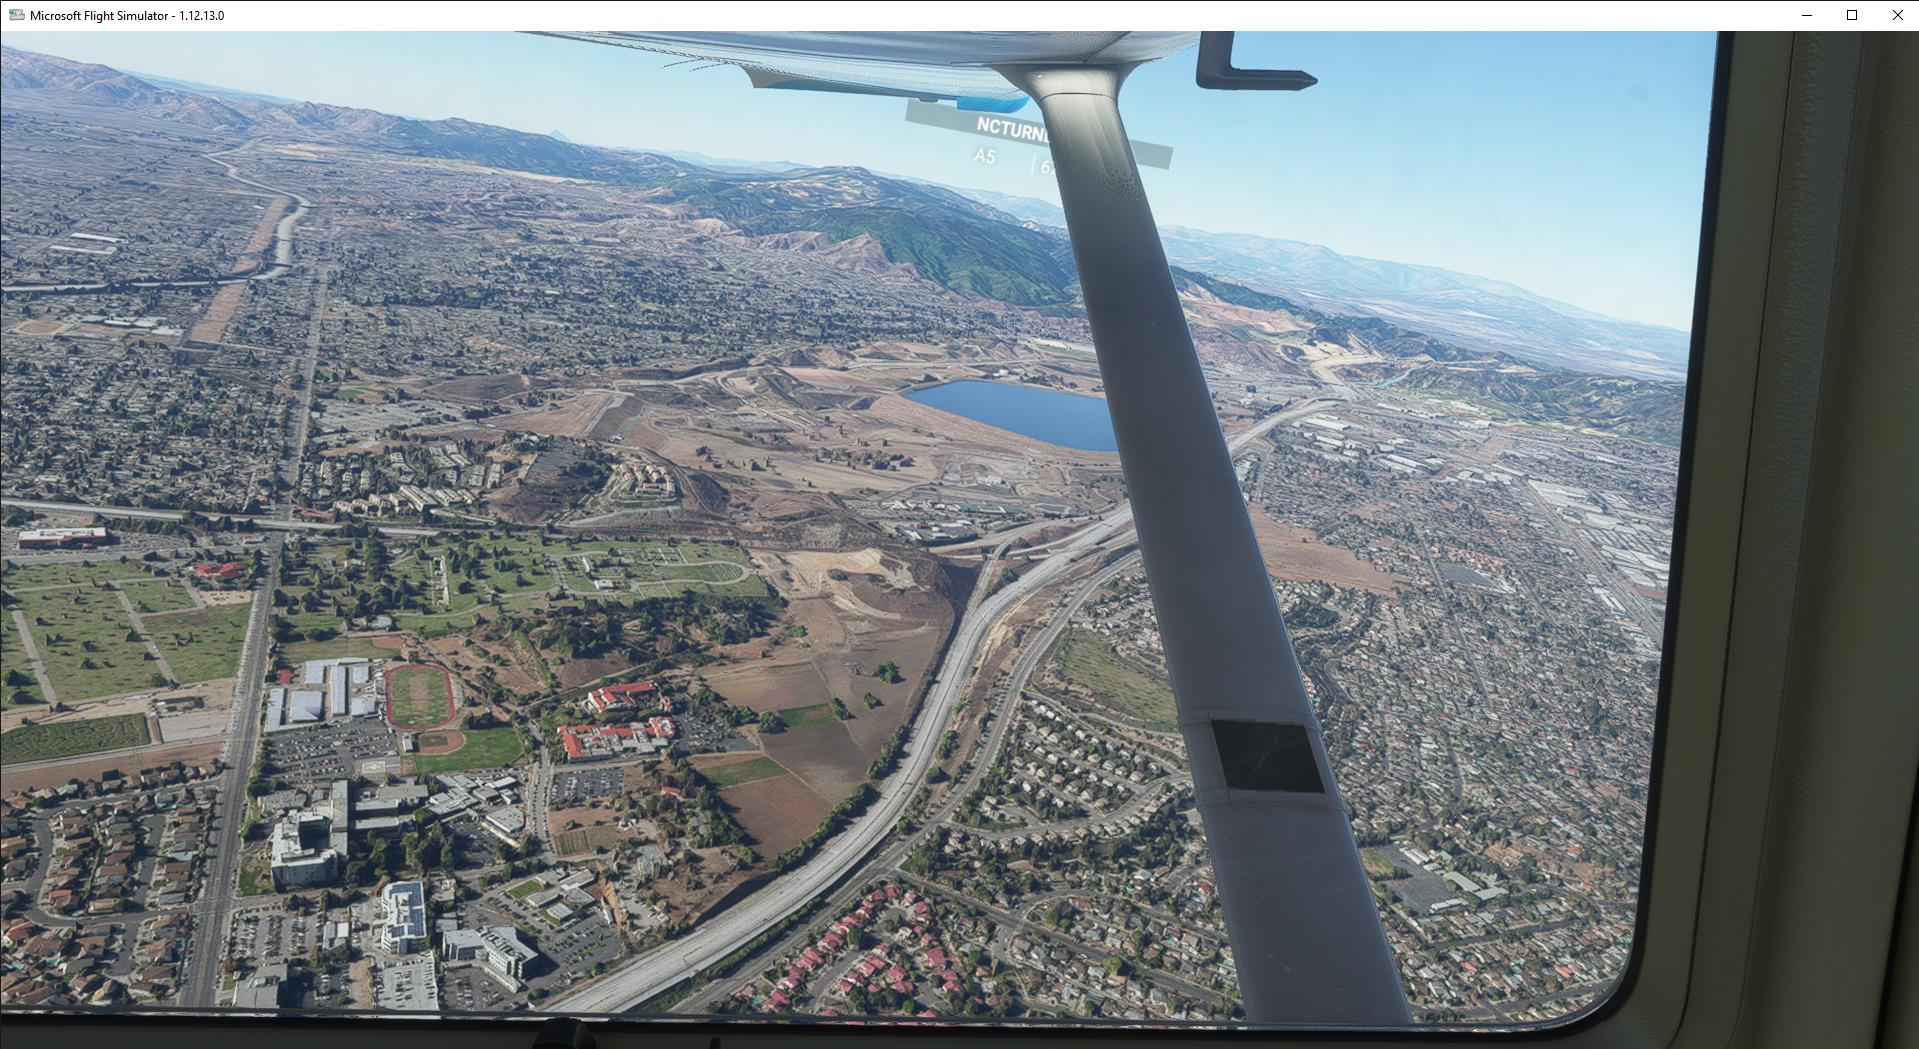 https://vivendobyte.blob.core.windows.net/57784/Microsoft Flight Simulator - 1.12.13.0 12_01_2021 21_22_22.jpg